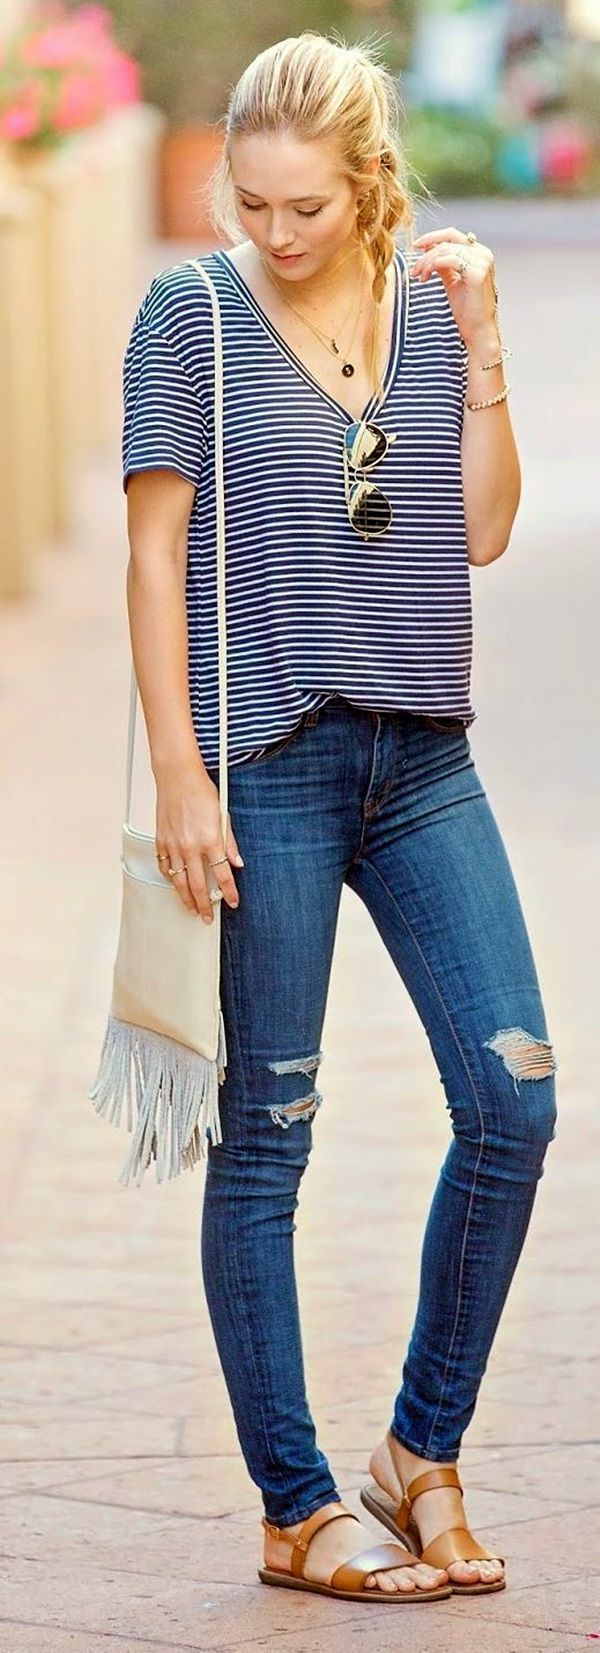 45 Ripped Jeans Outfit Ideas every stylish girl should try